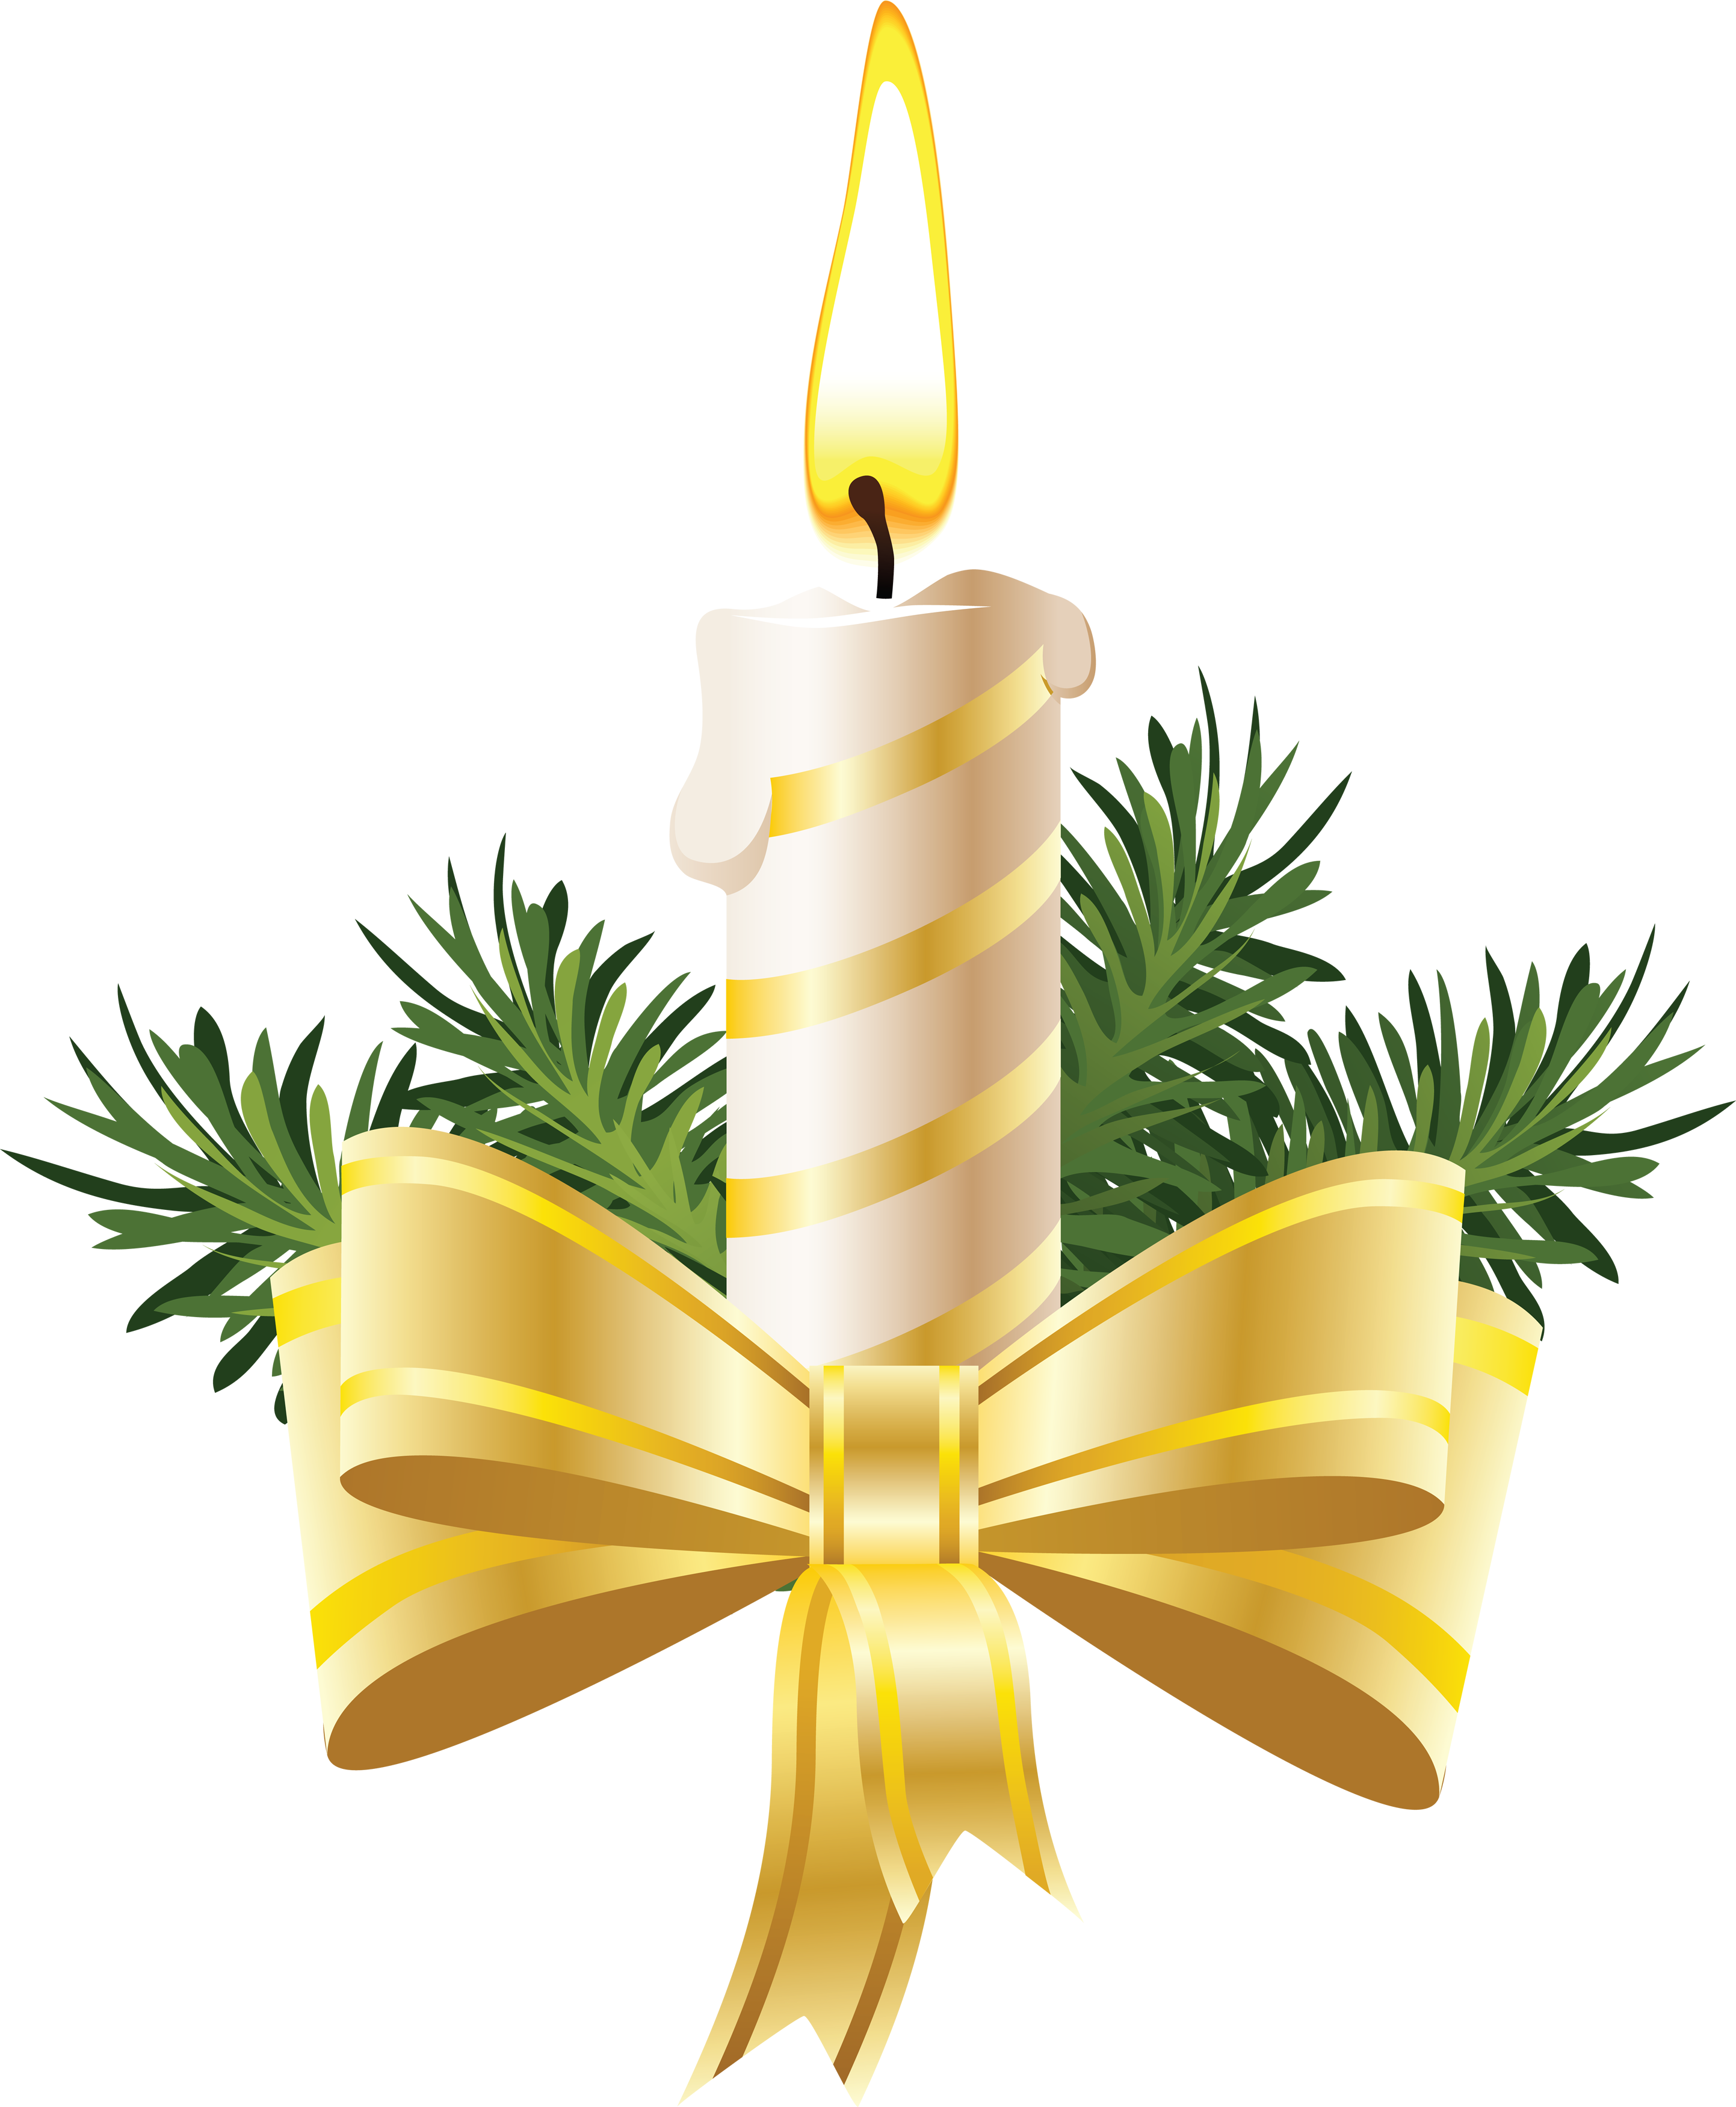 Christmas Candle with Big Bow PNG Image